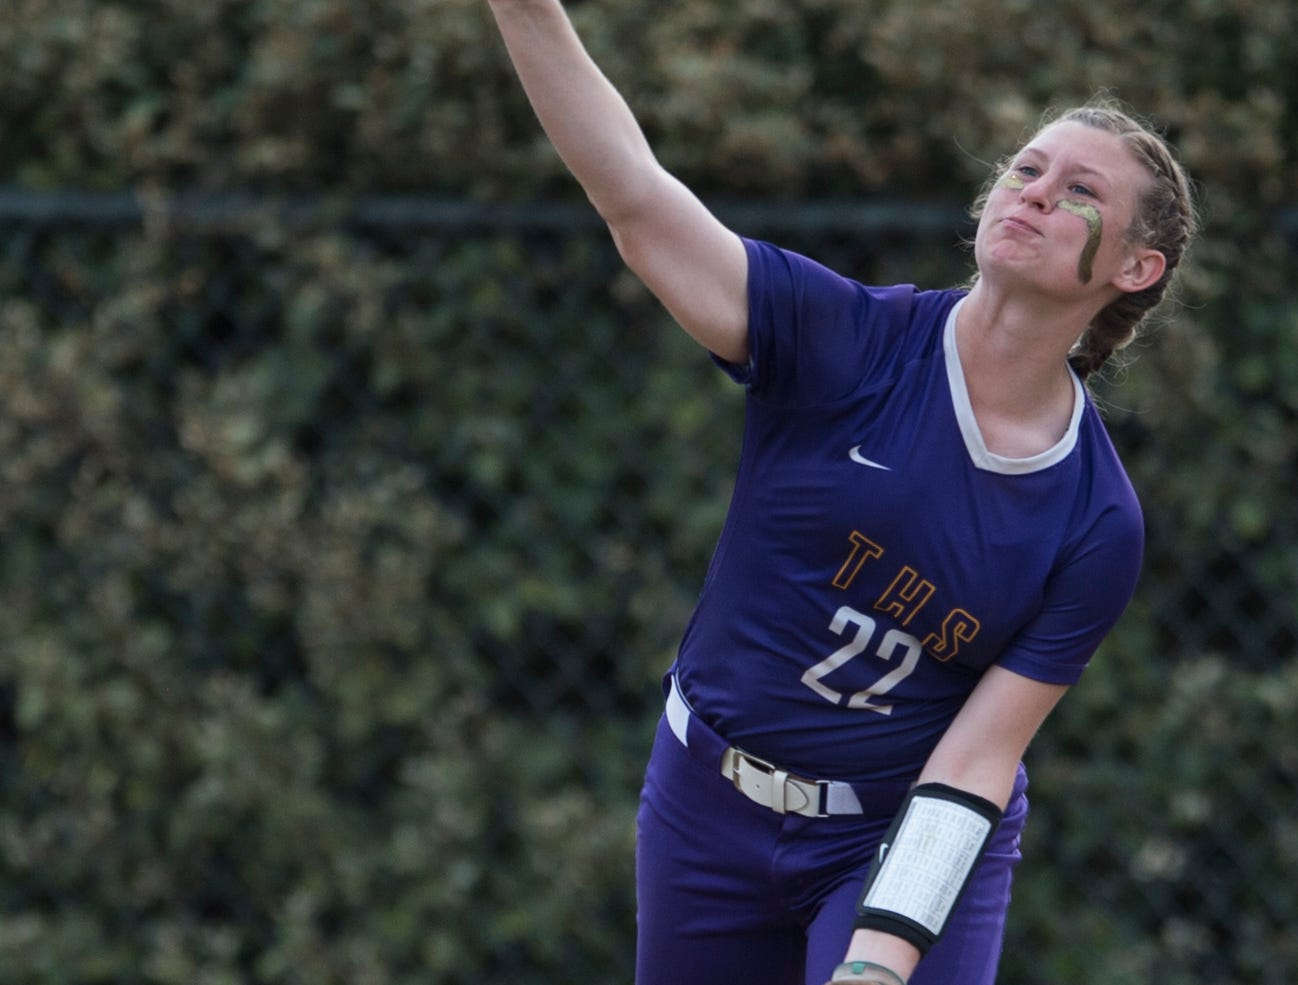 Tallassee's Anslee Osborne (22) throws in the ball from the outfield at Thompson Park in Montgomery, Ala., on Thursday, March 14, 2019. Tallassee defeated Brew Tech 7-0.